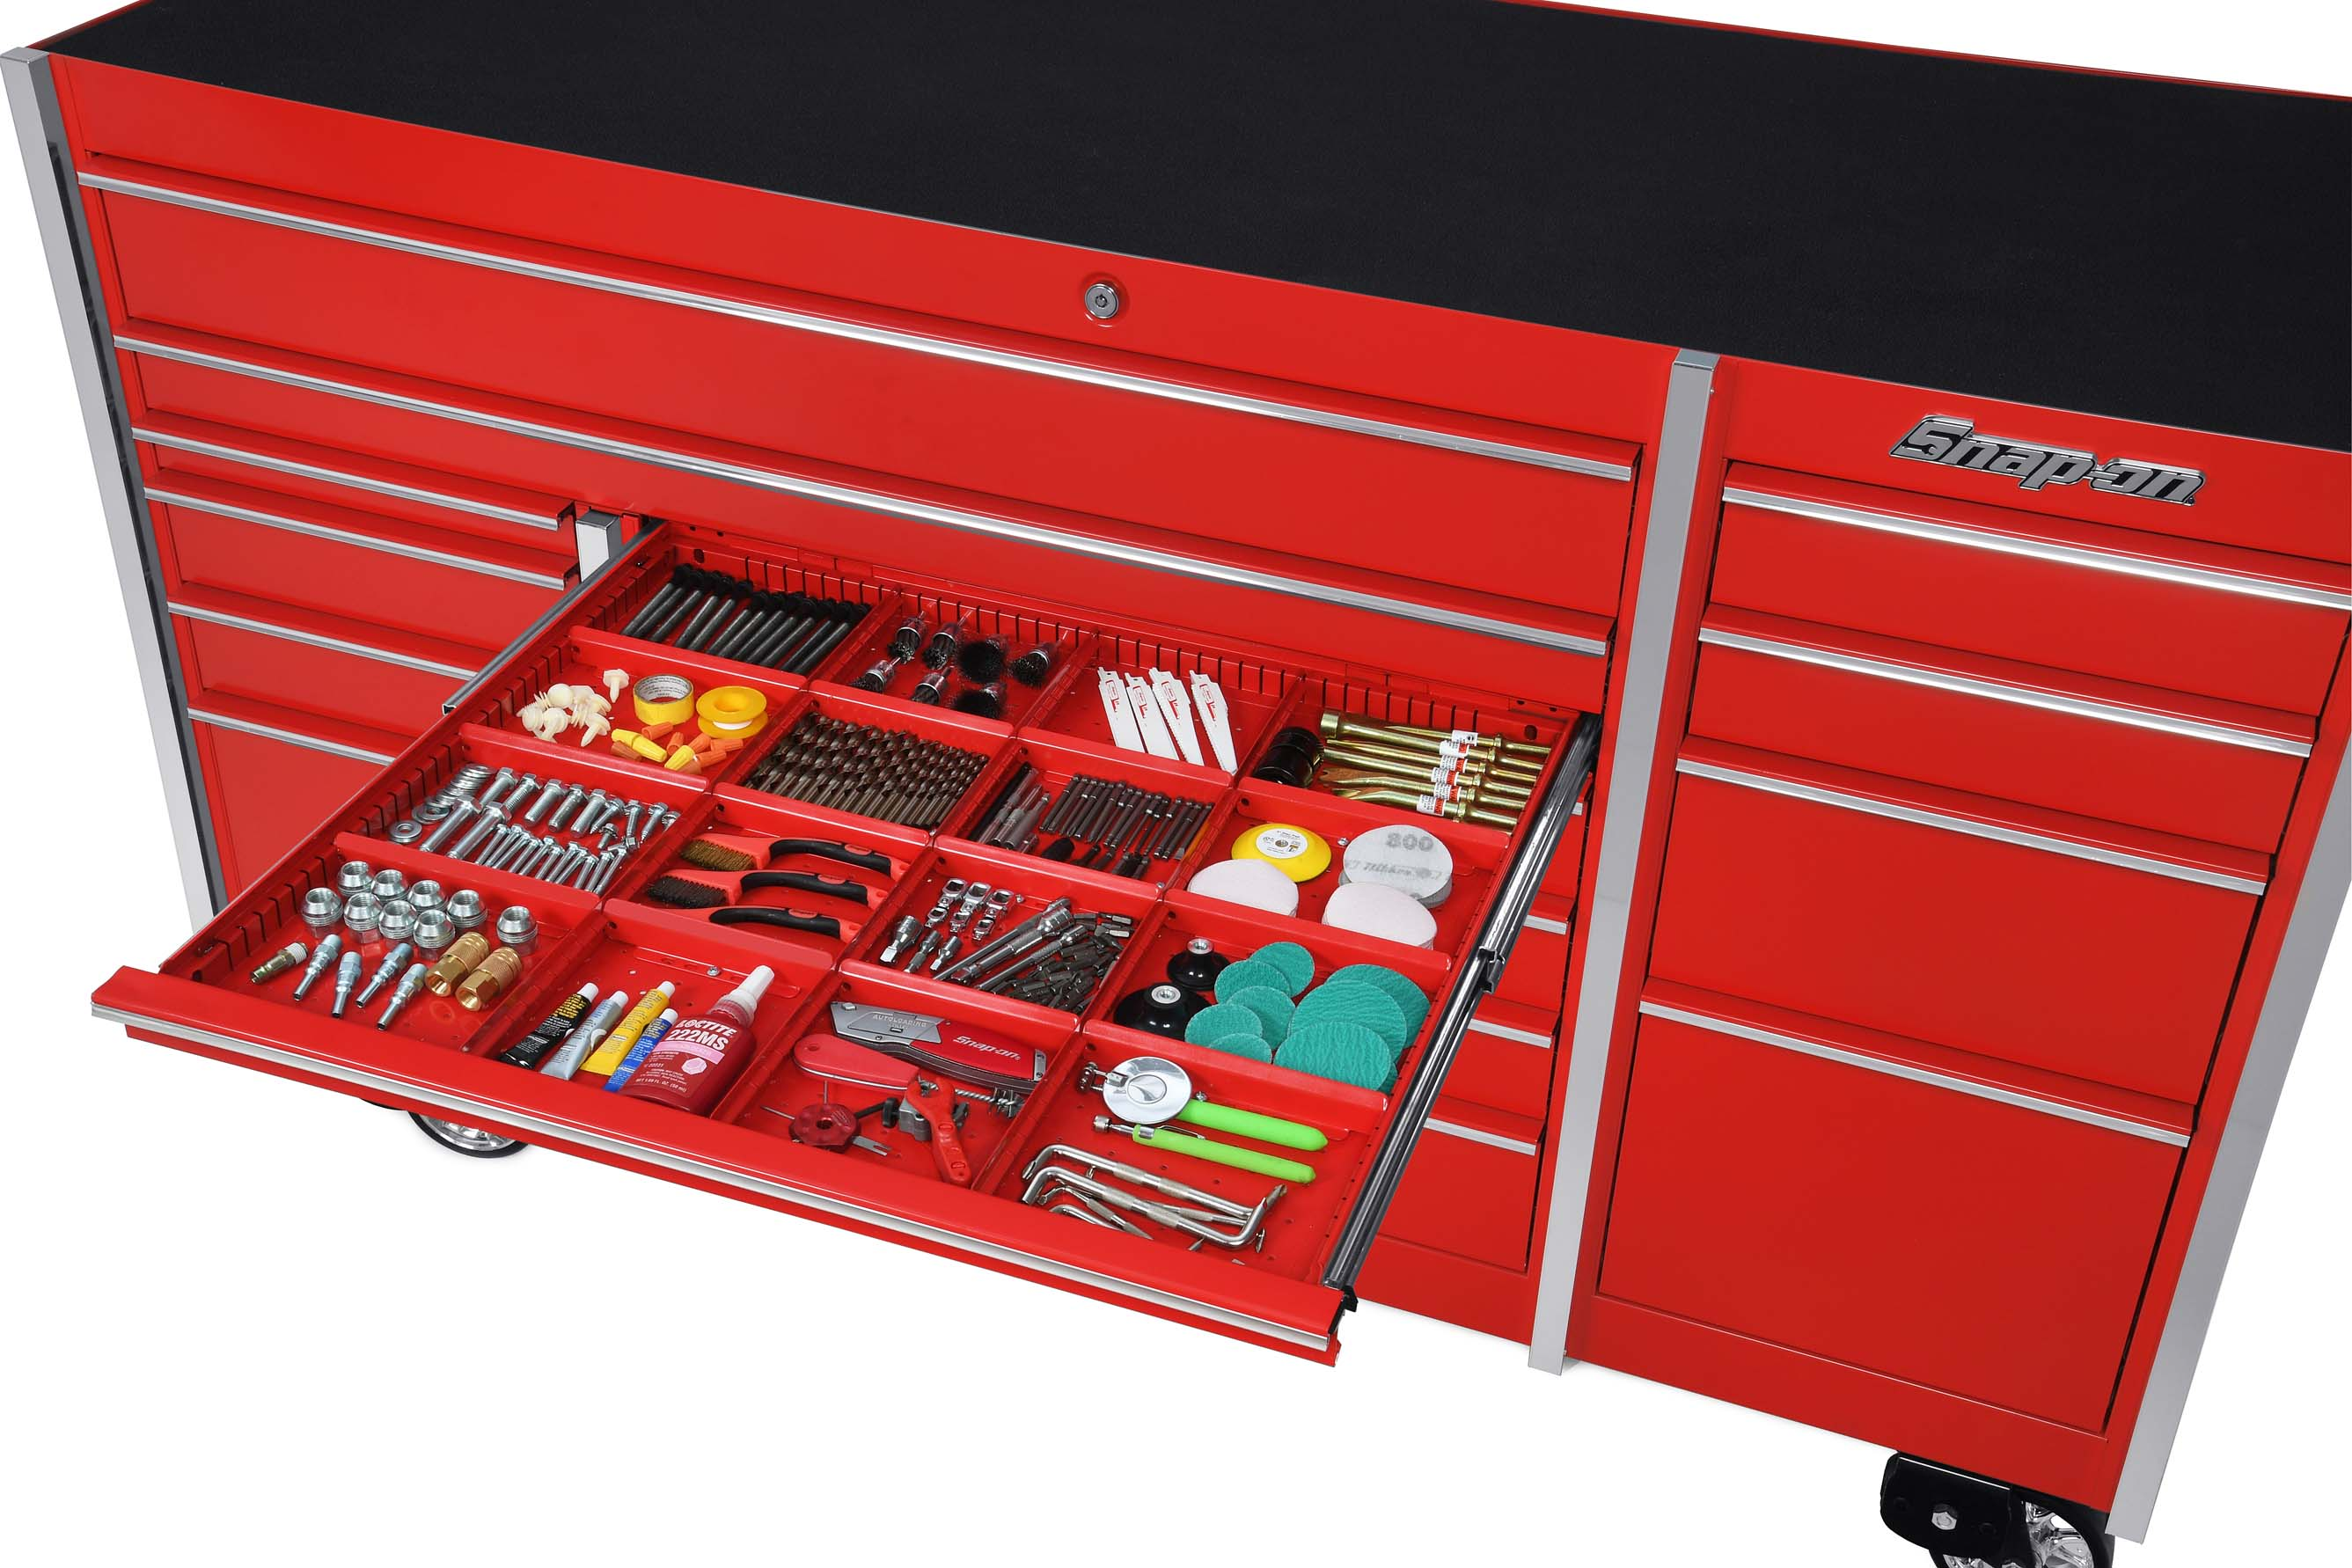 Snap-on and organize | Today's TruckingToday's Trucking